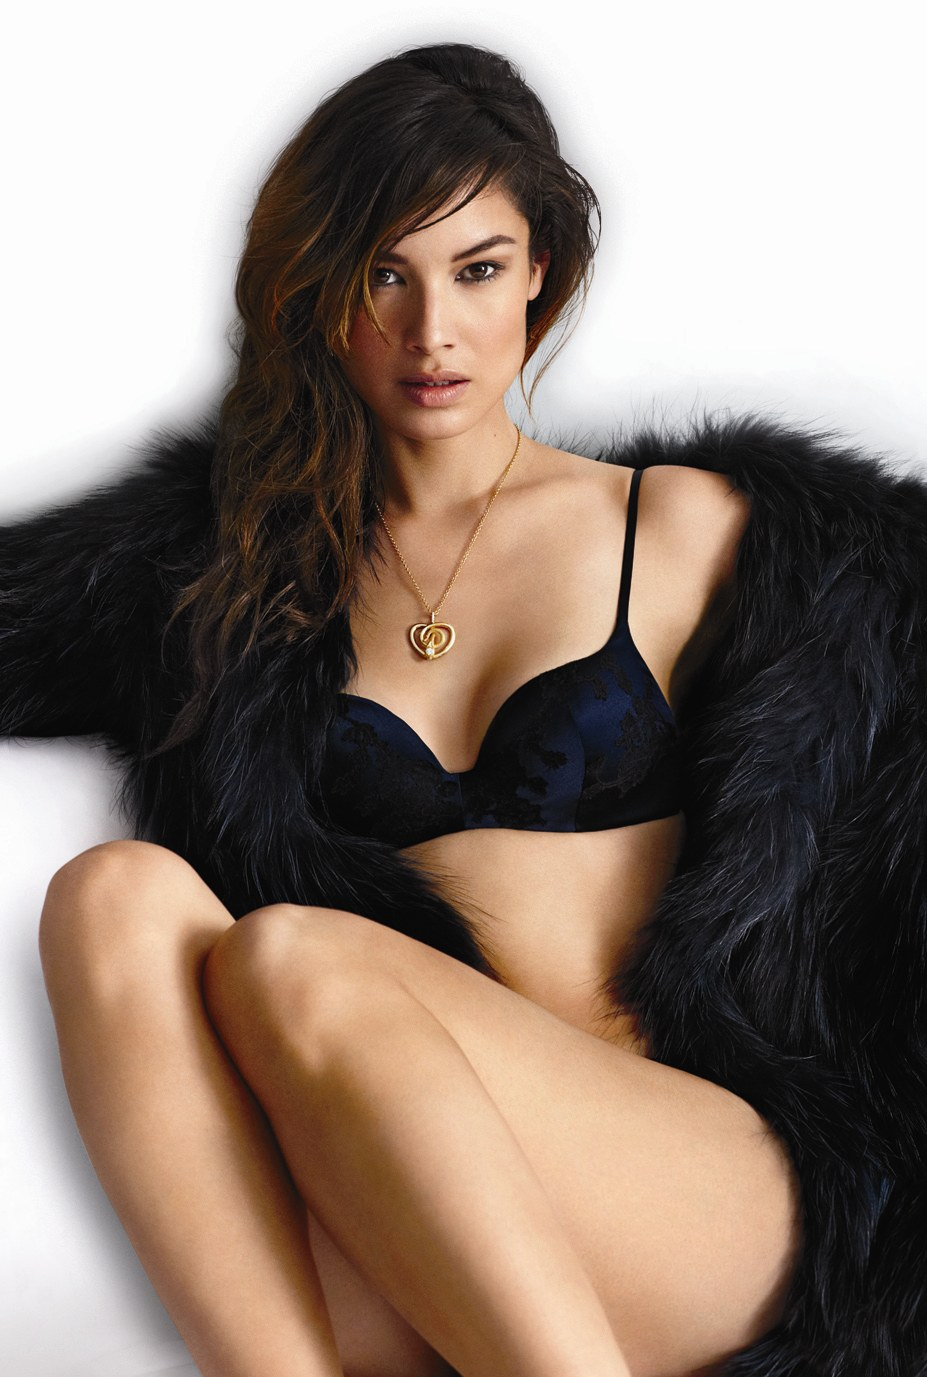 Berenice Marlohe Joined The Exclusive Club Of Bond Girls